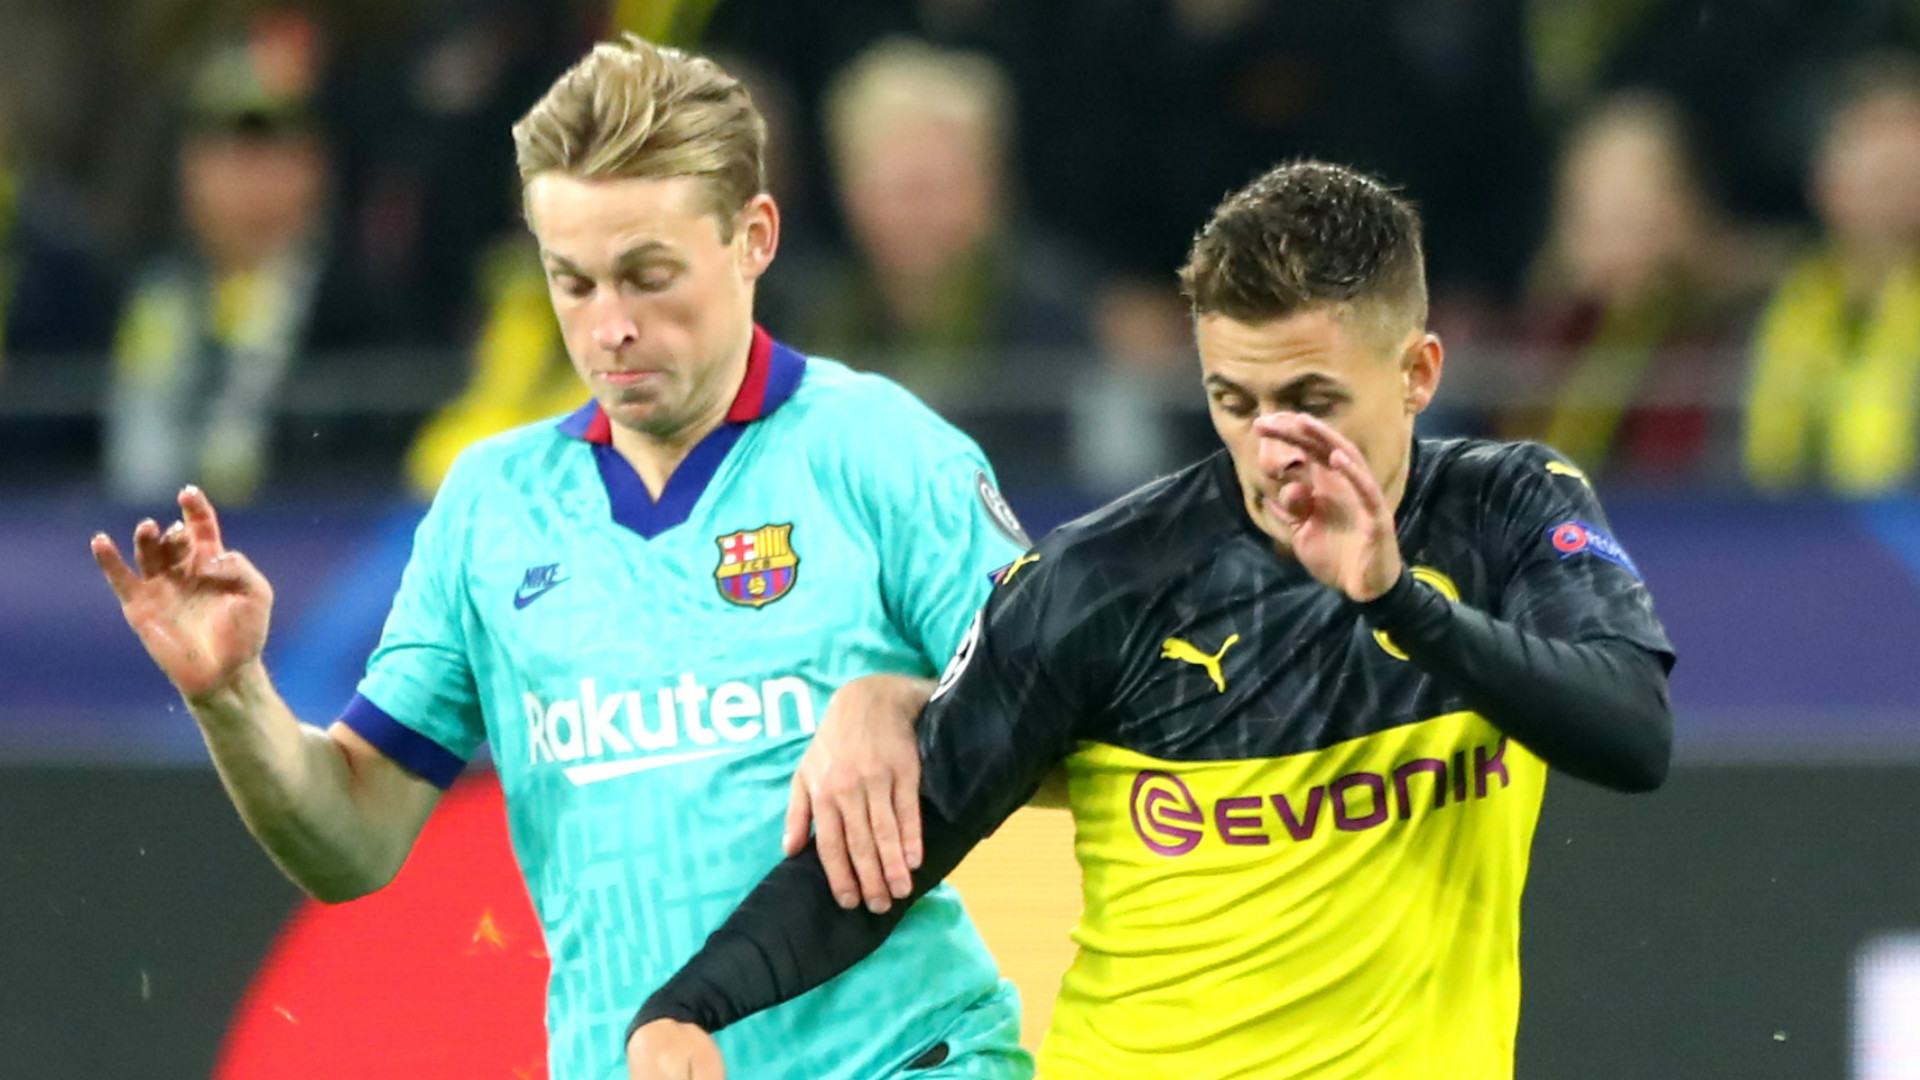 'If I'm not playing well, it's my fault' - De Jong refuses to blame position change for underwhelming Barca form